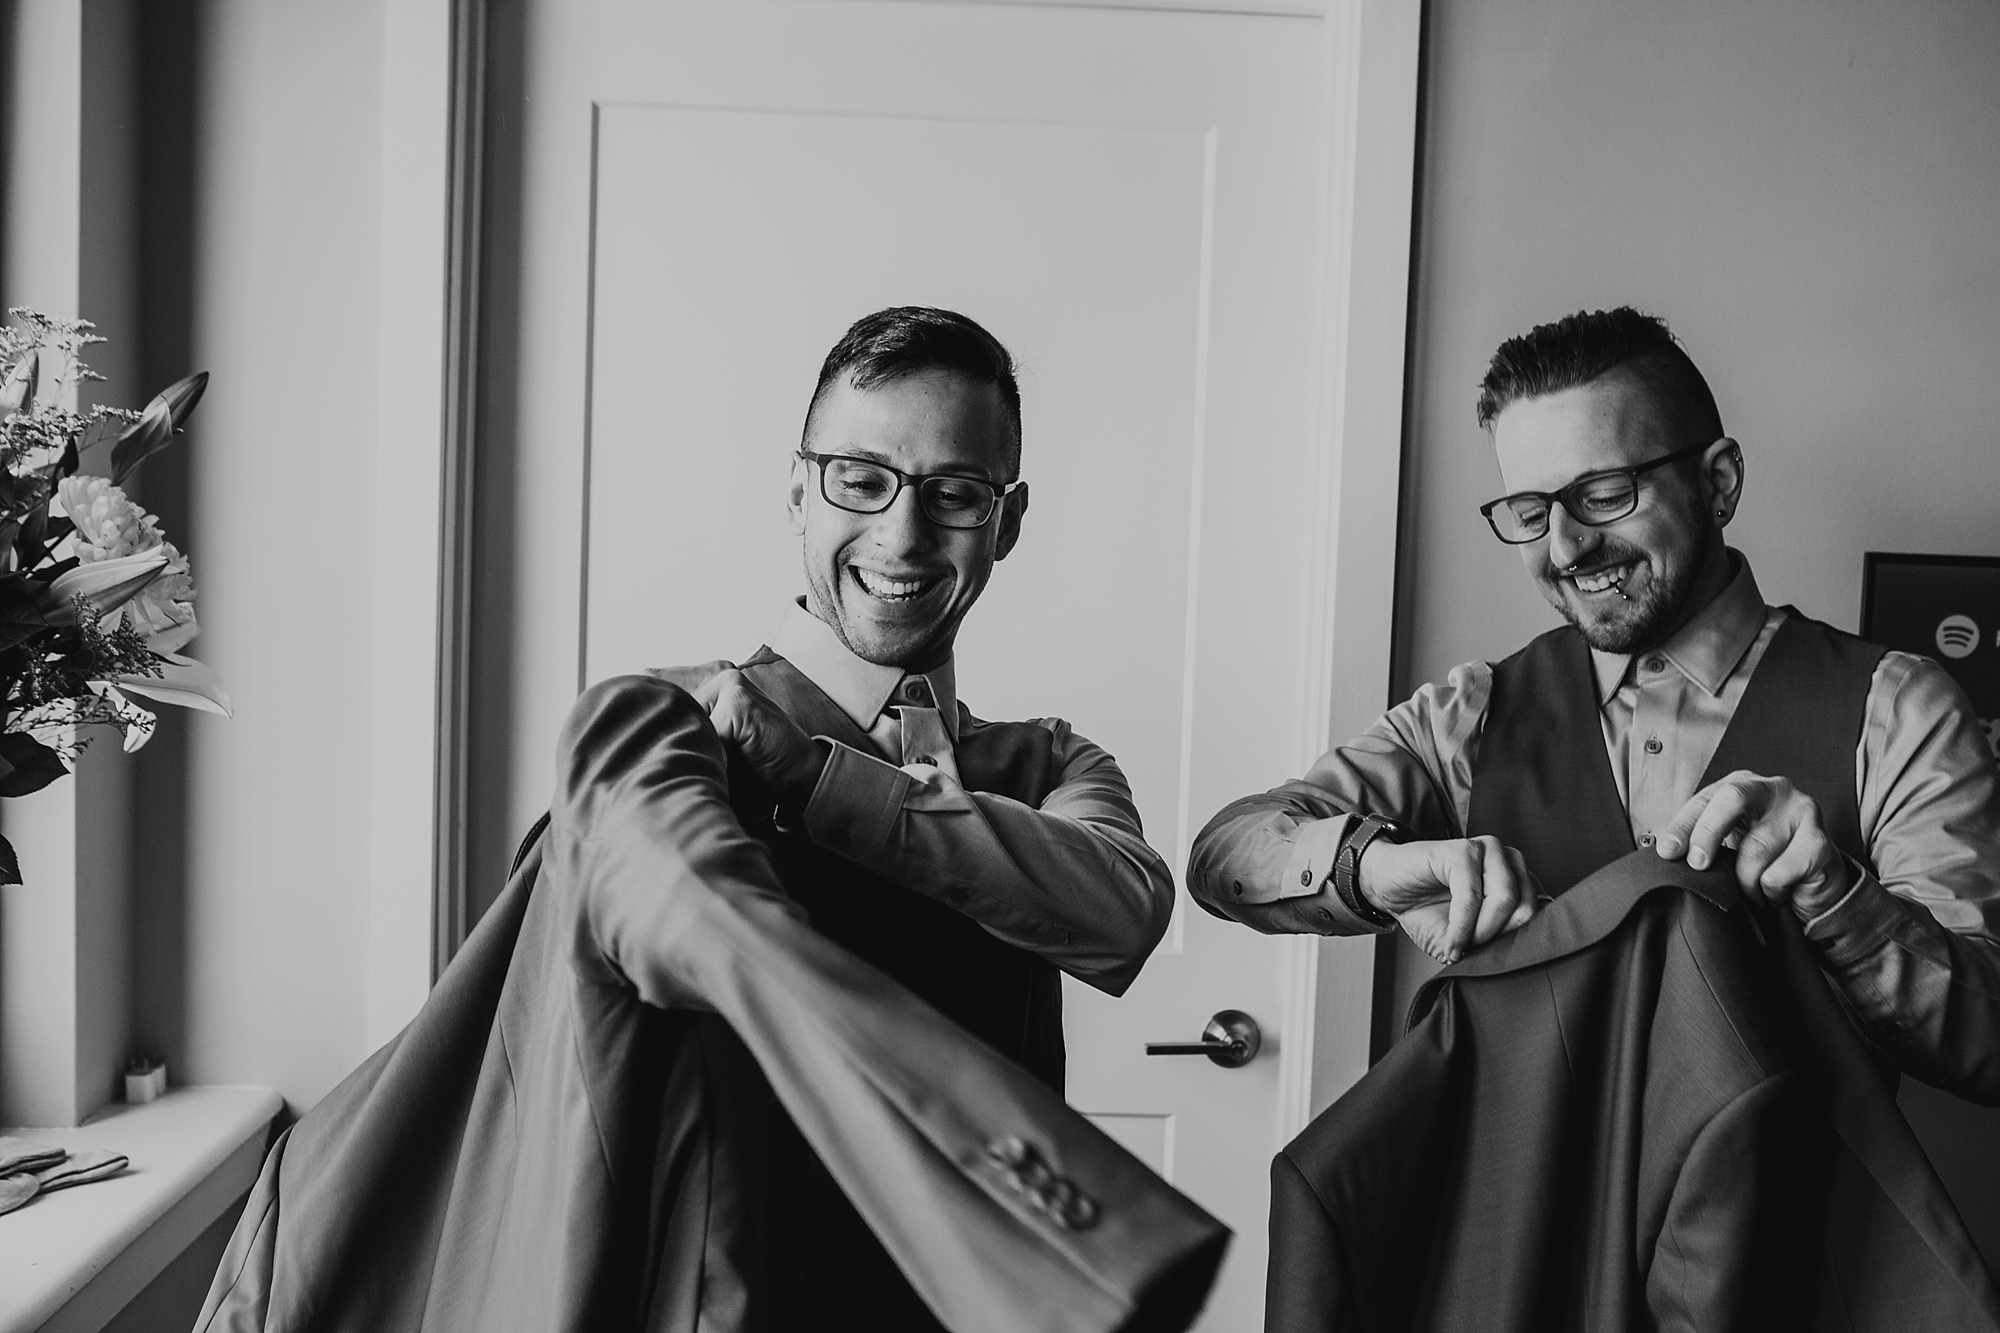 Joe_Mac_Creative_Philadelphia_Philly_LGBT_Gay_Engagement_Wedding_Photography__0050.jpg